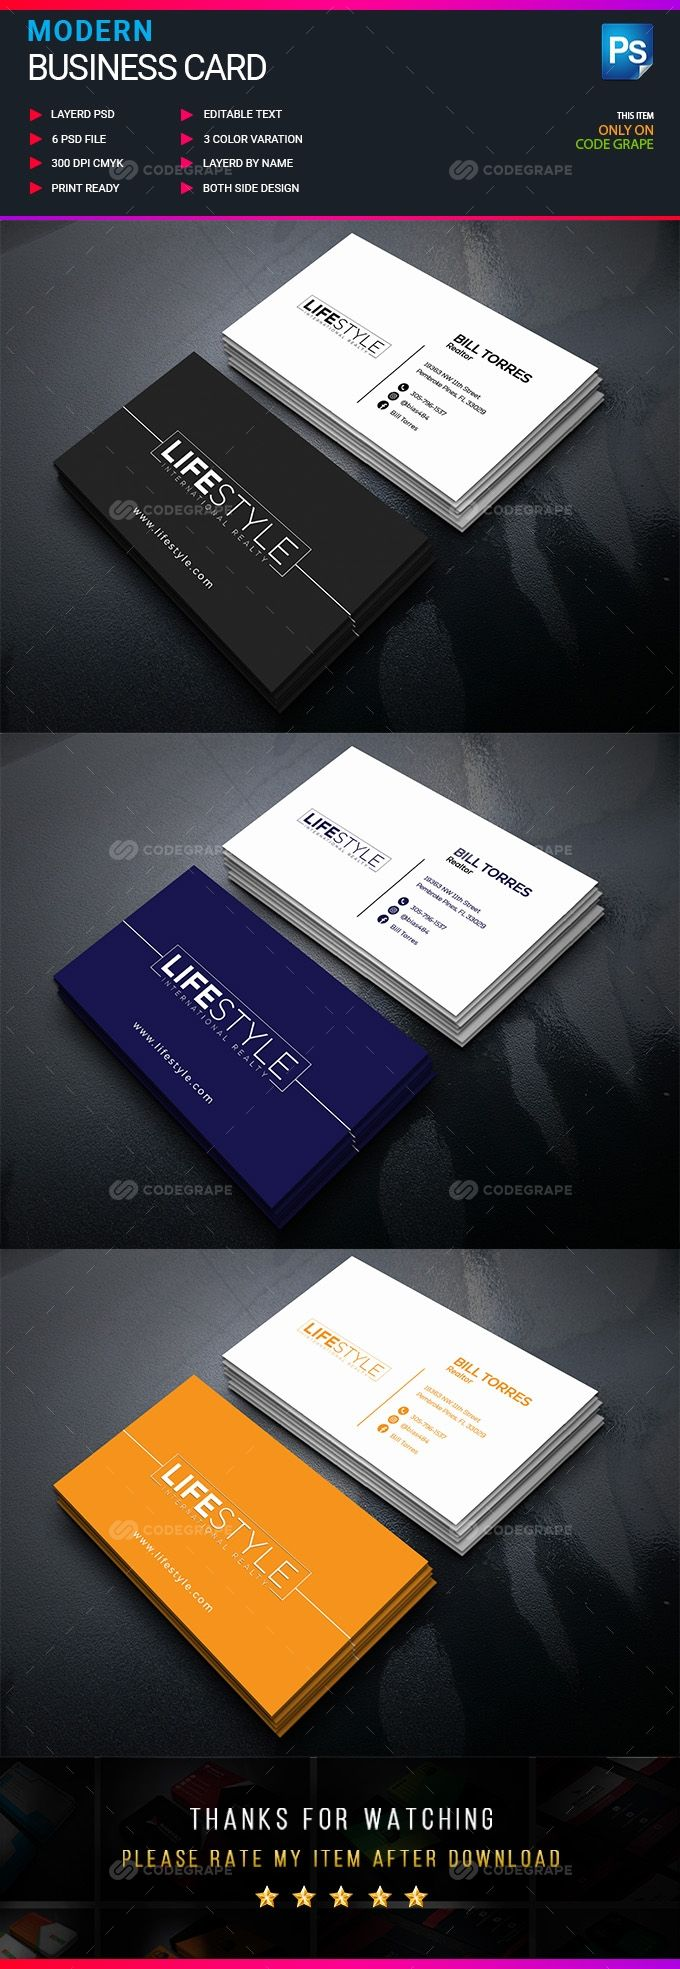 Corporate Business Card In 2021 Corporate Business Card Text Fonts Corporate Business